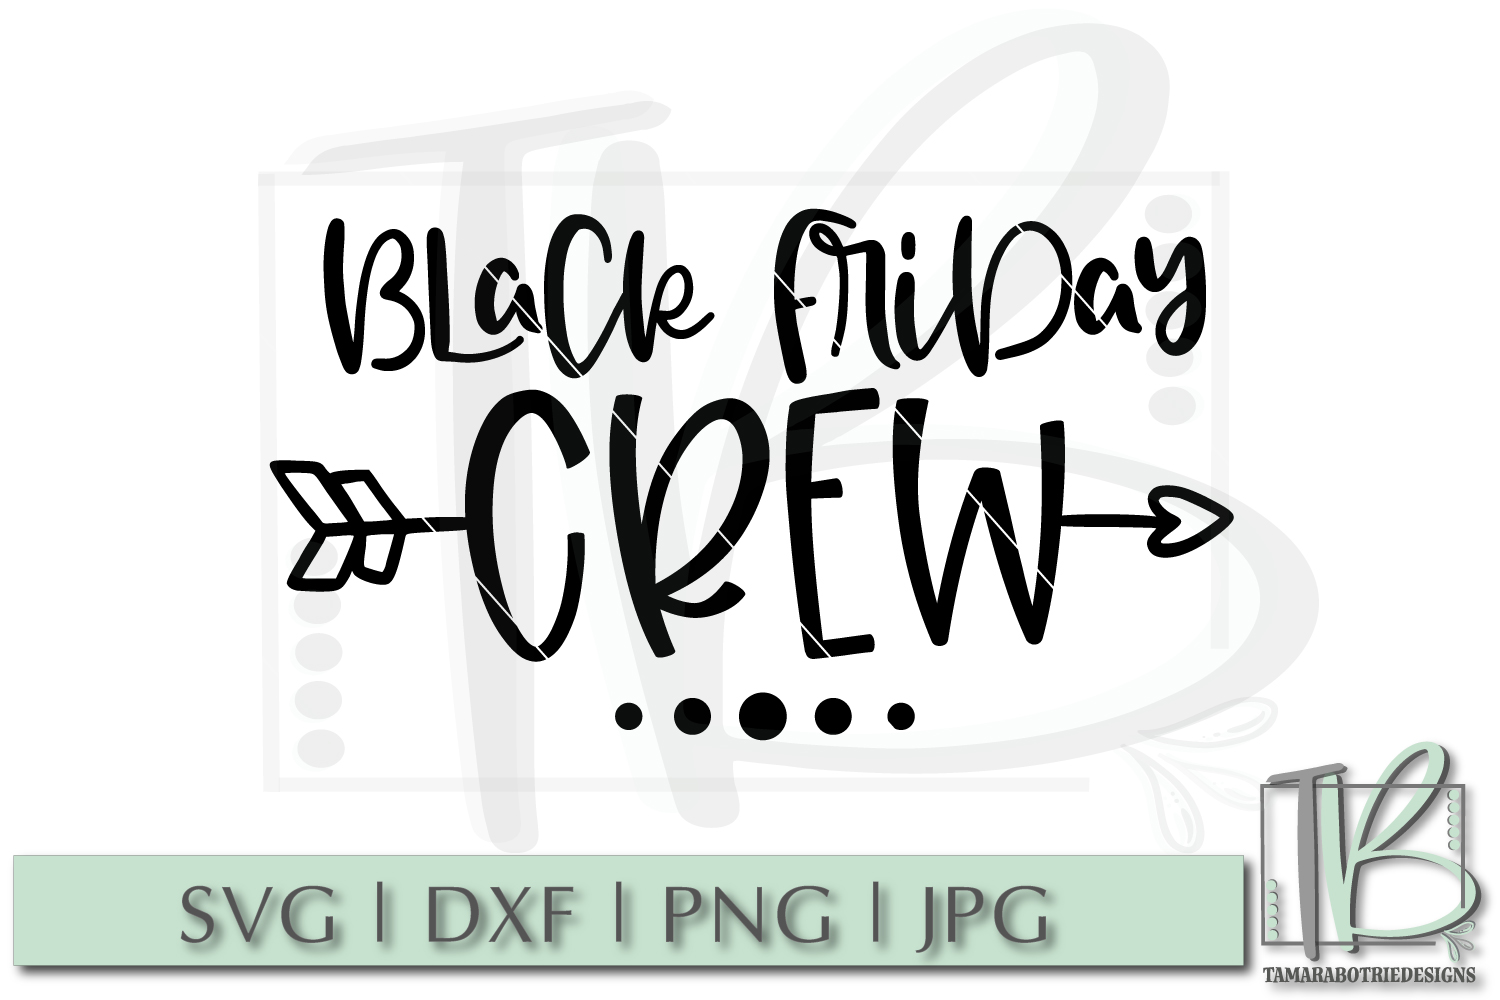 Black Friday SVG File, Black Friday Crew SVG example image 2